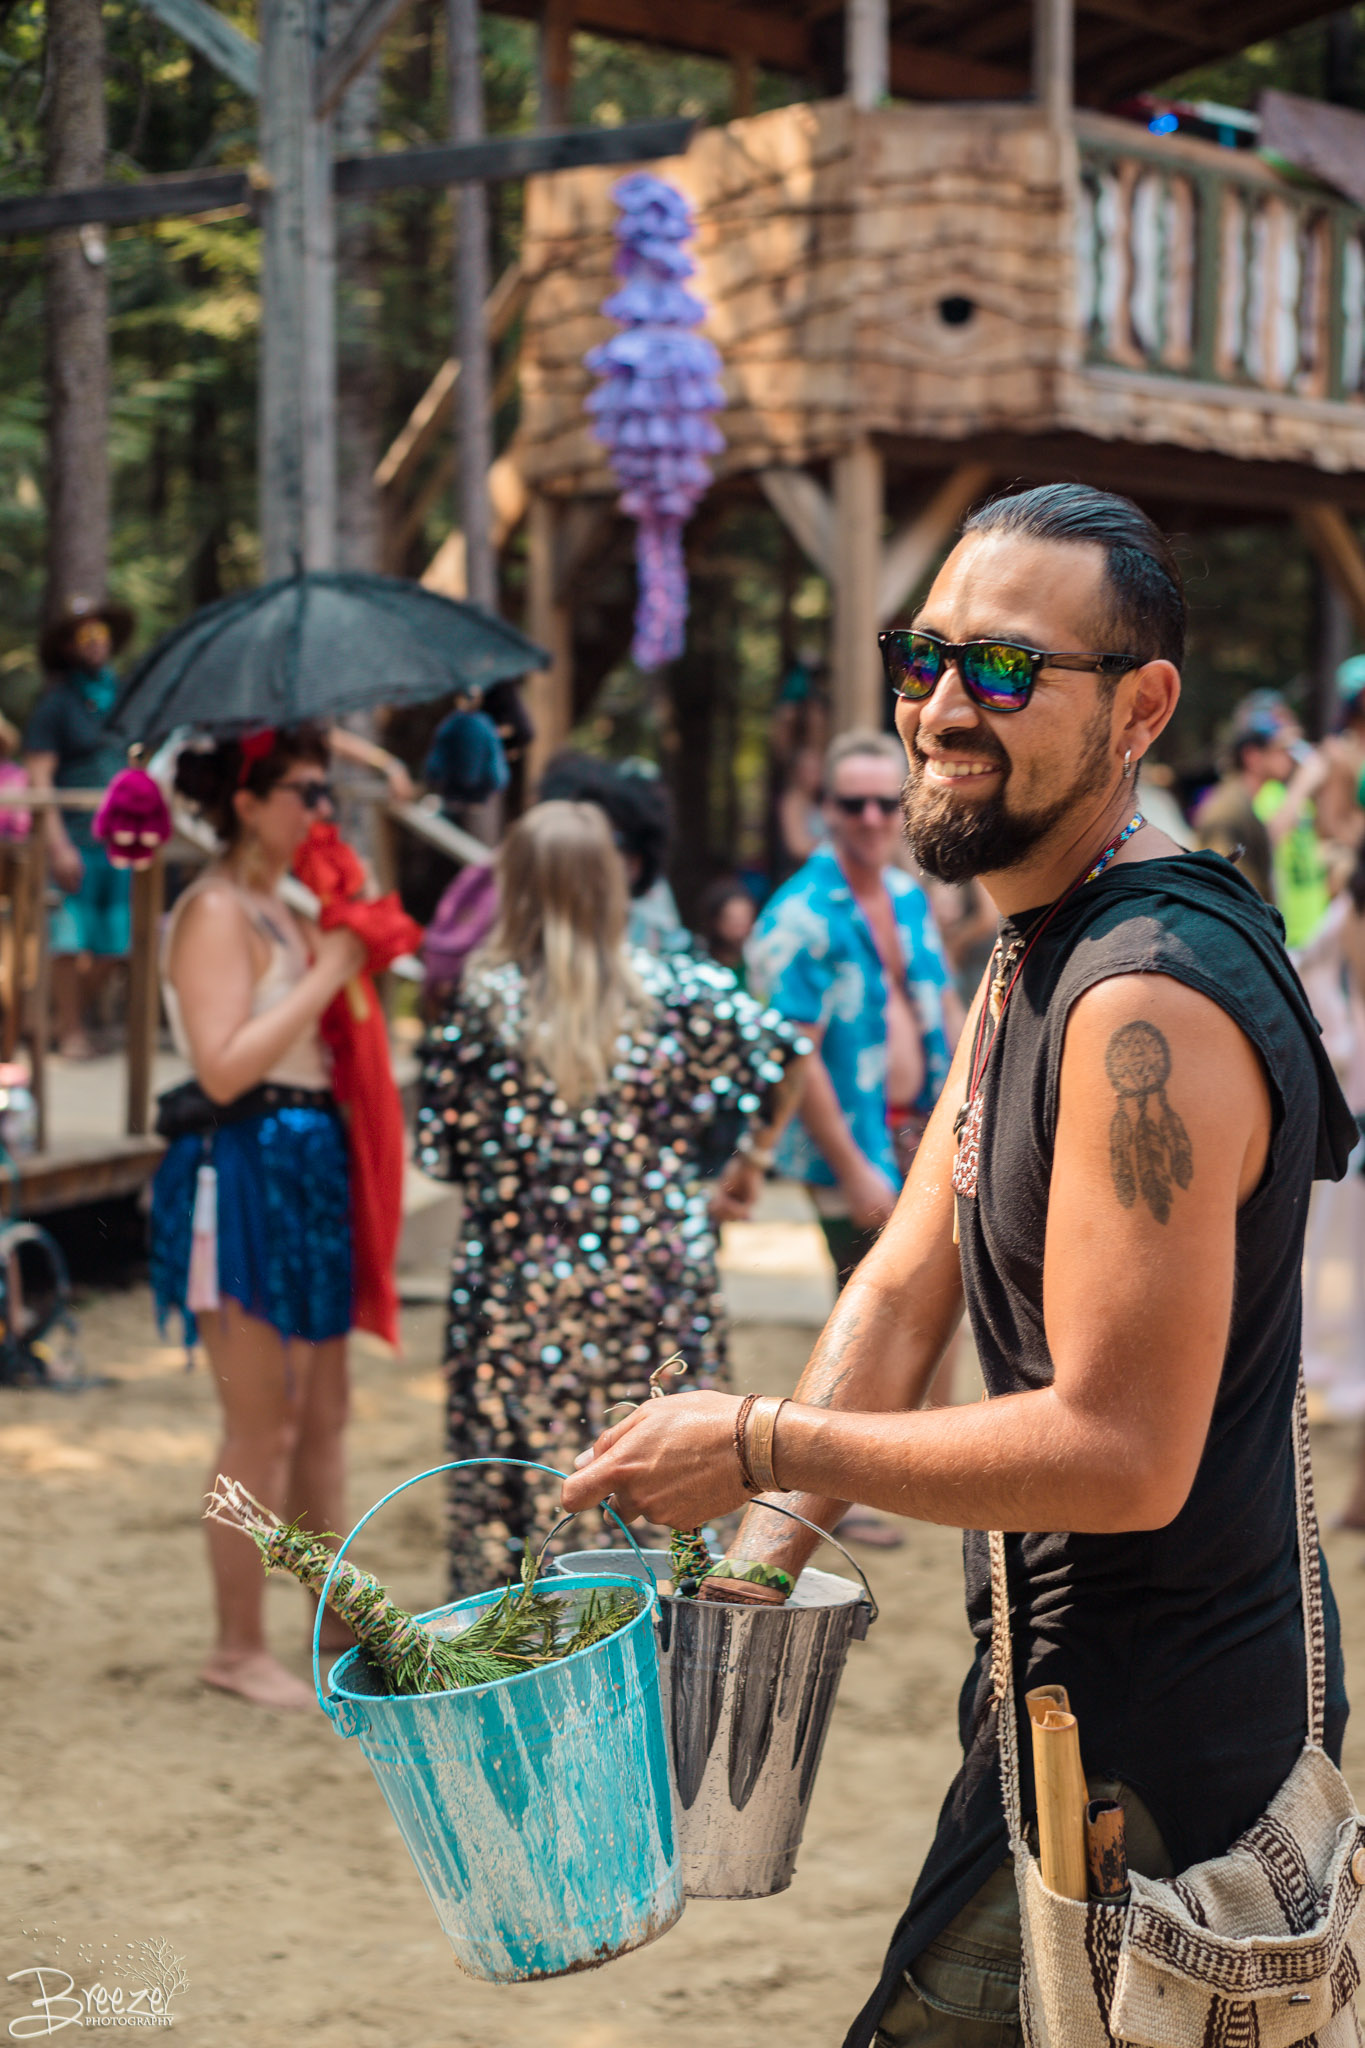 Brie'Ana Breeze Photography & Media - Shambhala 2018-0480.jpg